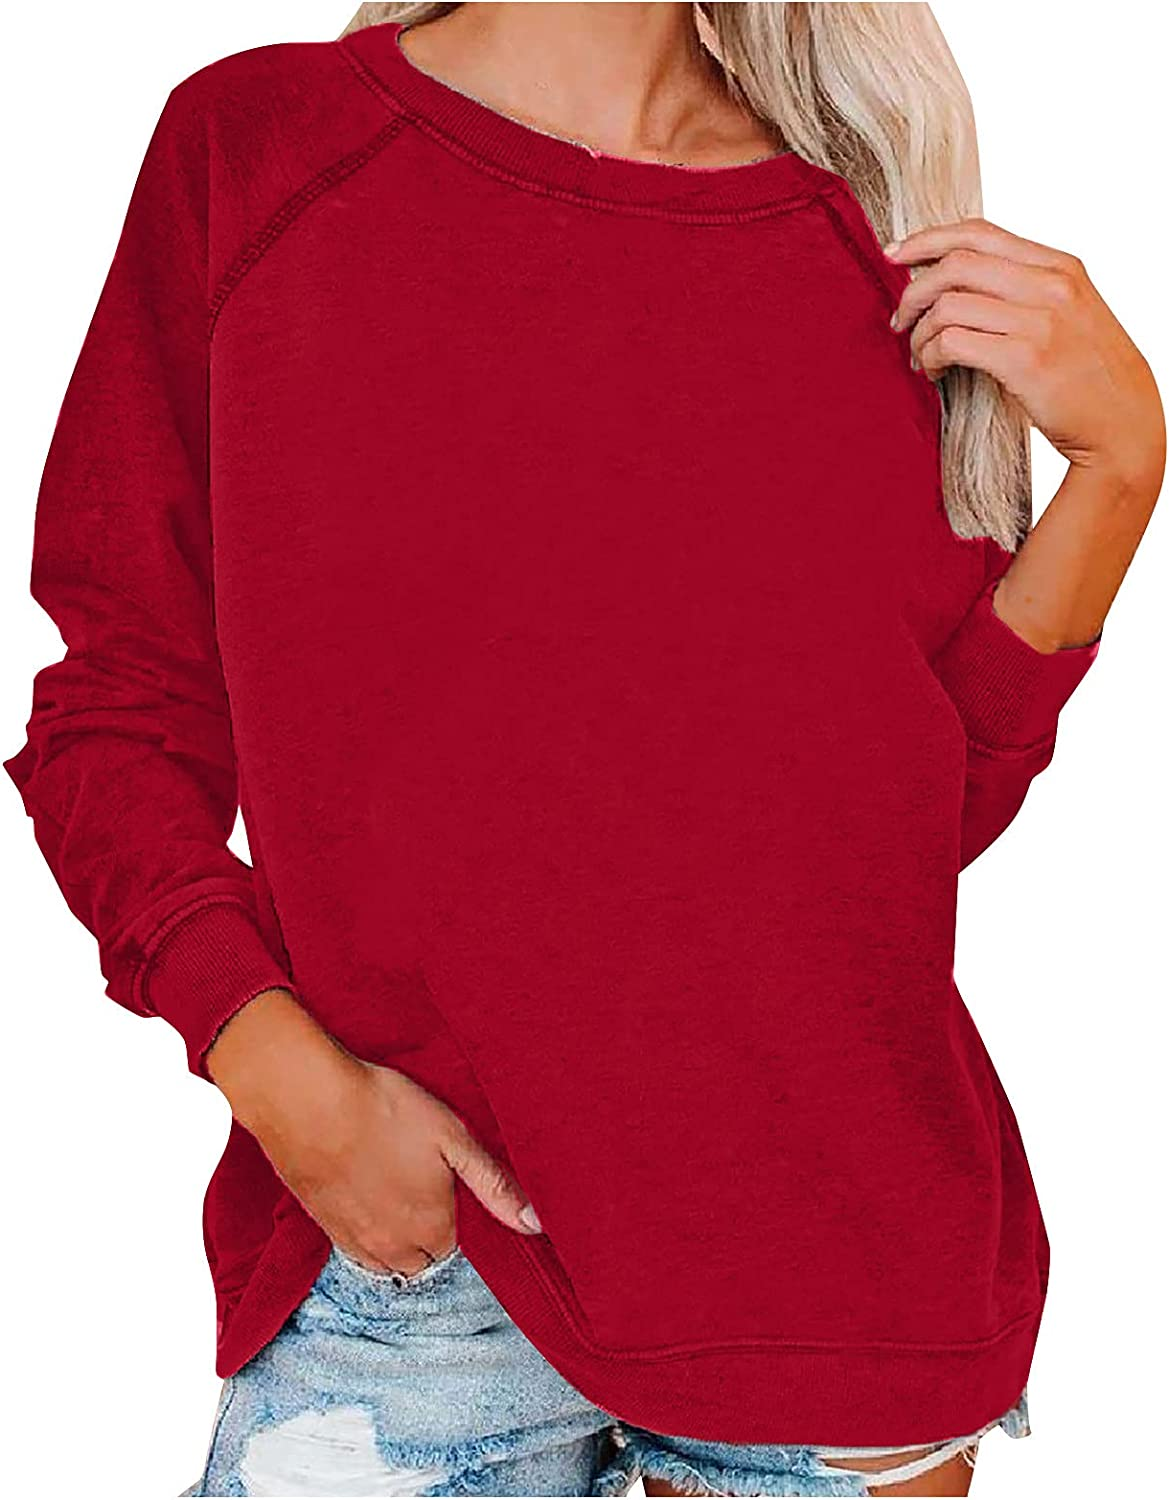 raillery Womens Max 68% OFF Fashion Solid Color N SweaterLong Print Credence Sleeve O